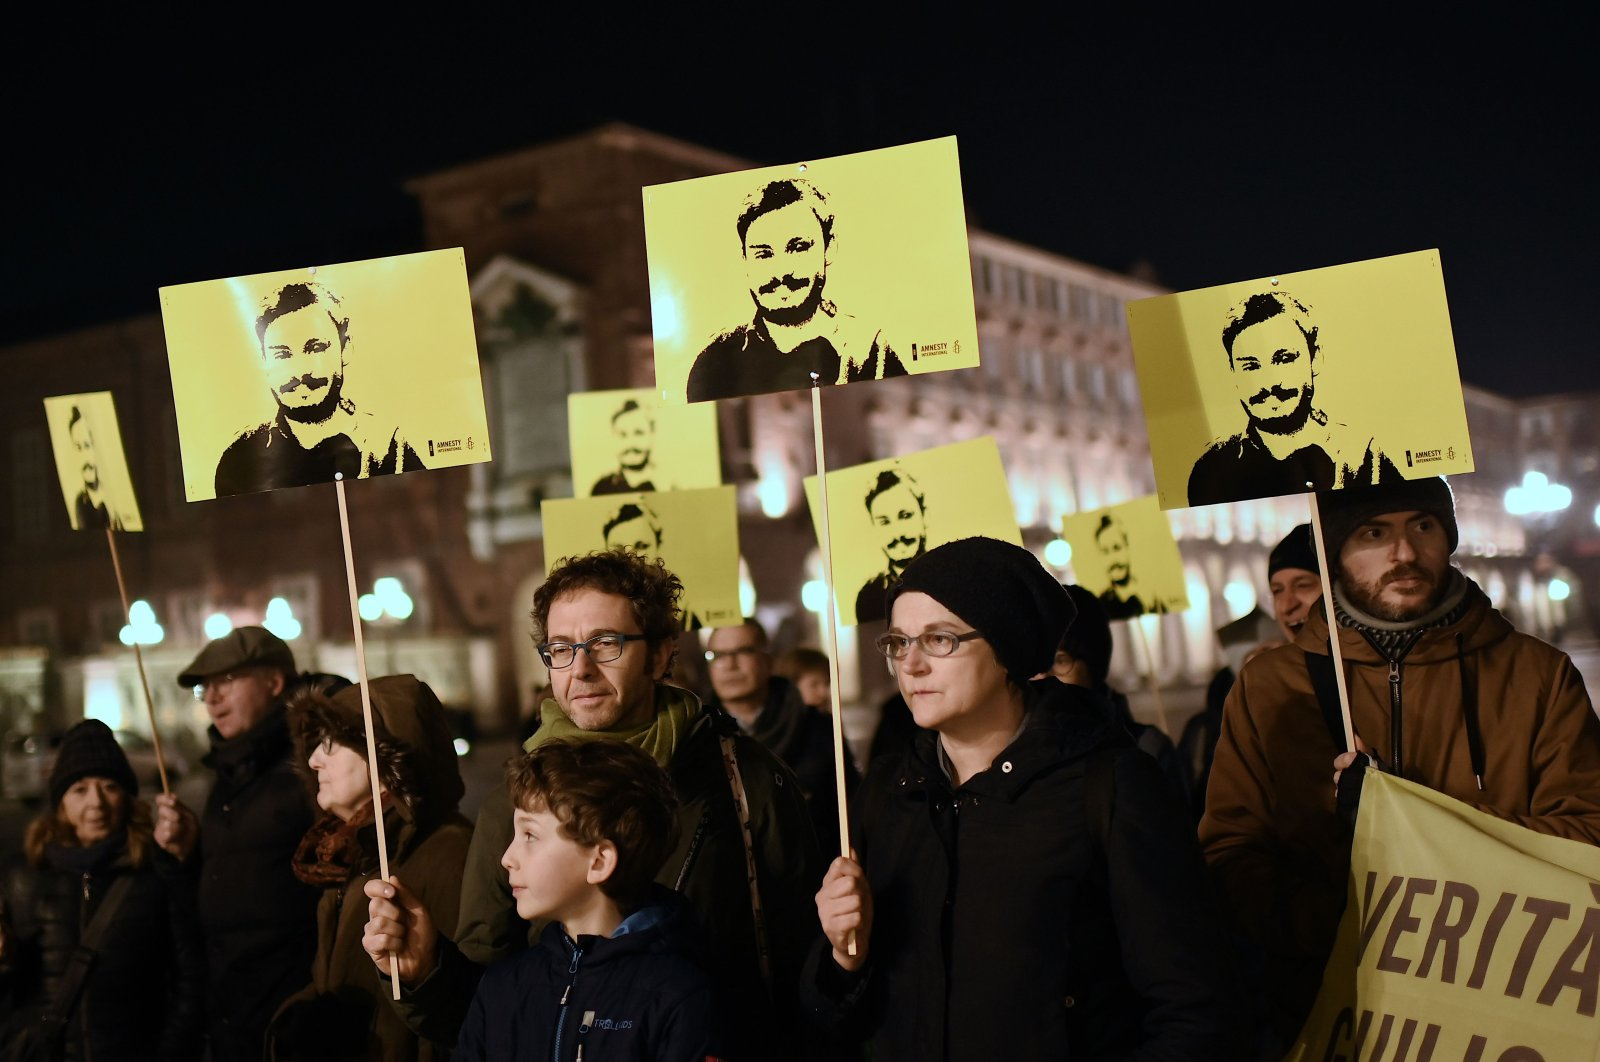 Activists of human rights organization Amnesty International take part in a demonstration in Piazza Castello in Turin to mark the fourth anniversary since the disappearance of Italian student Giulio Regeni, Jan. 25, 2020. (AFP Photo)